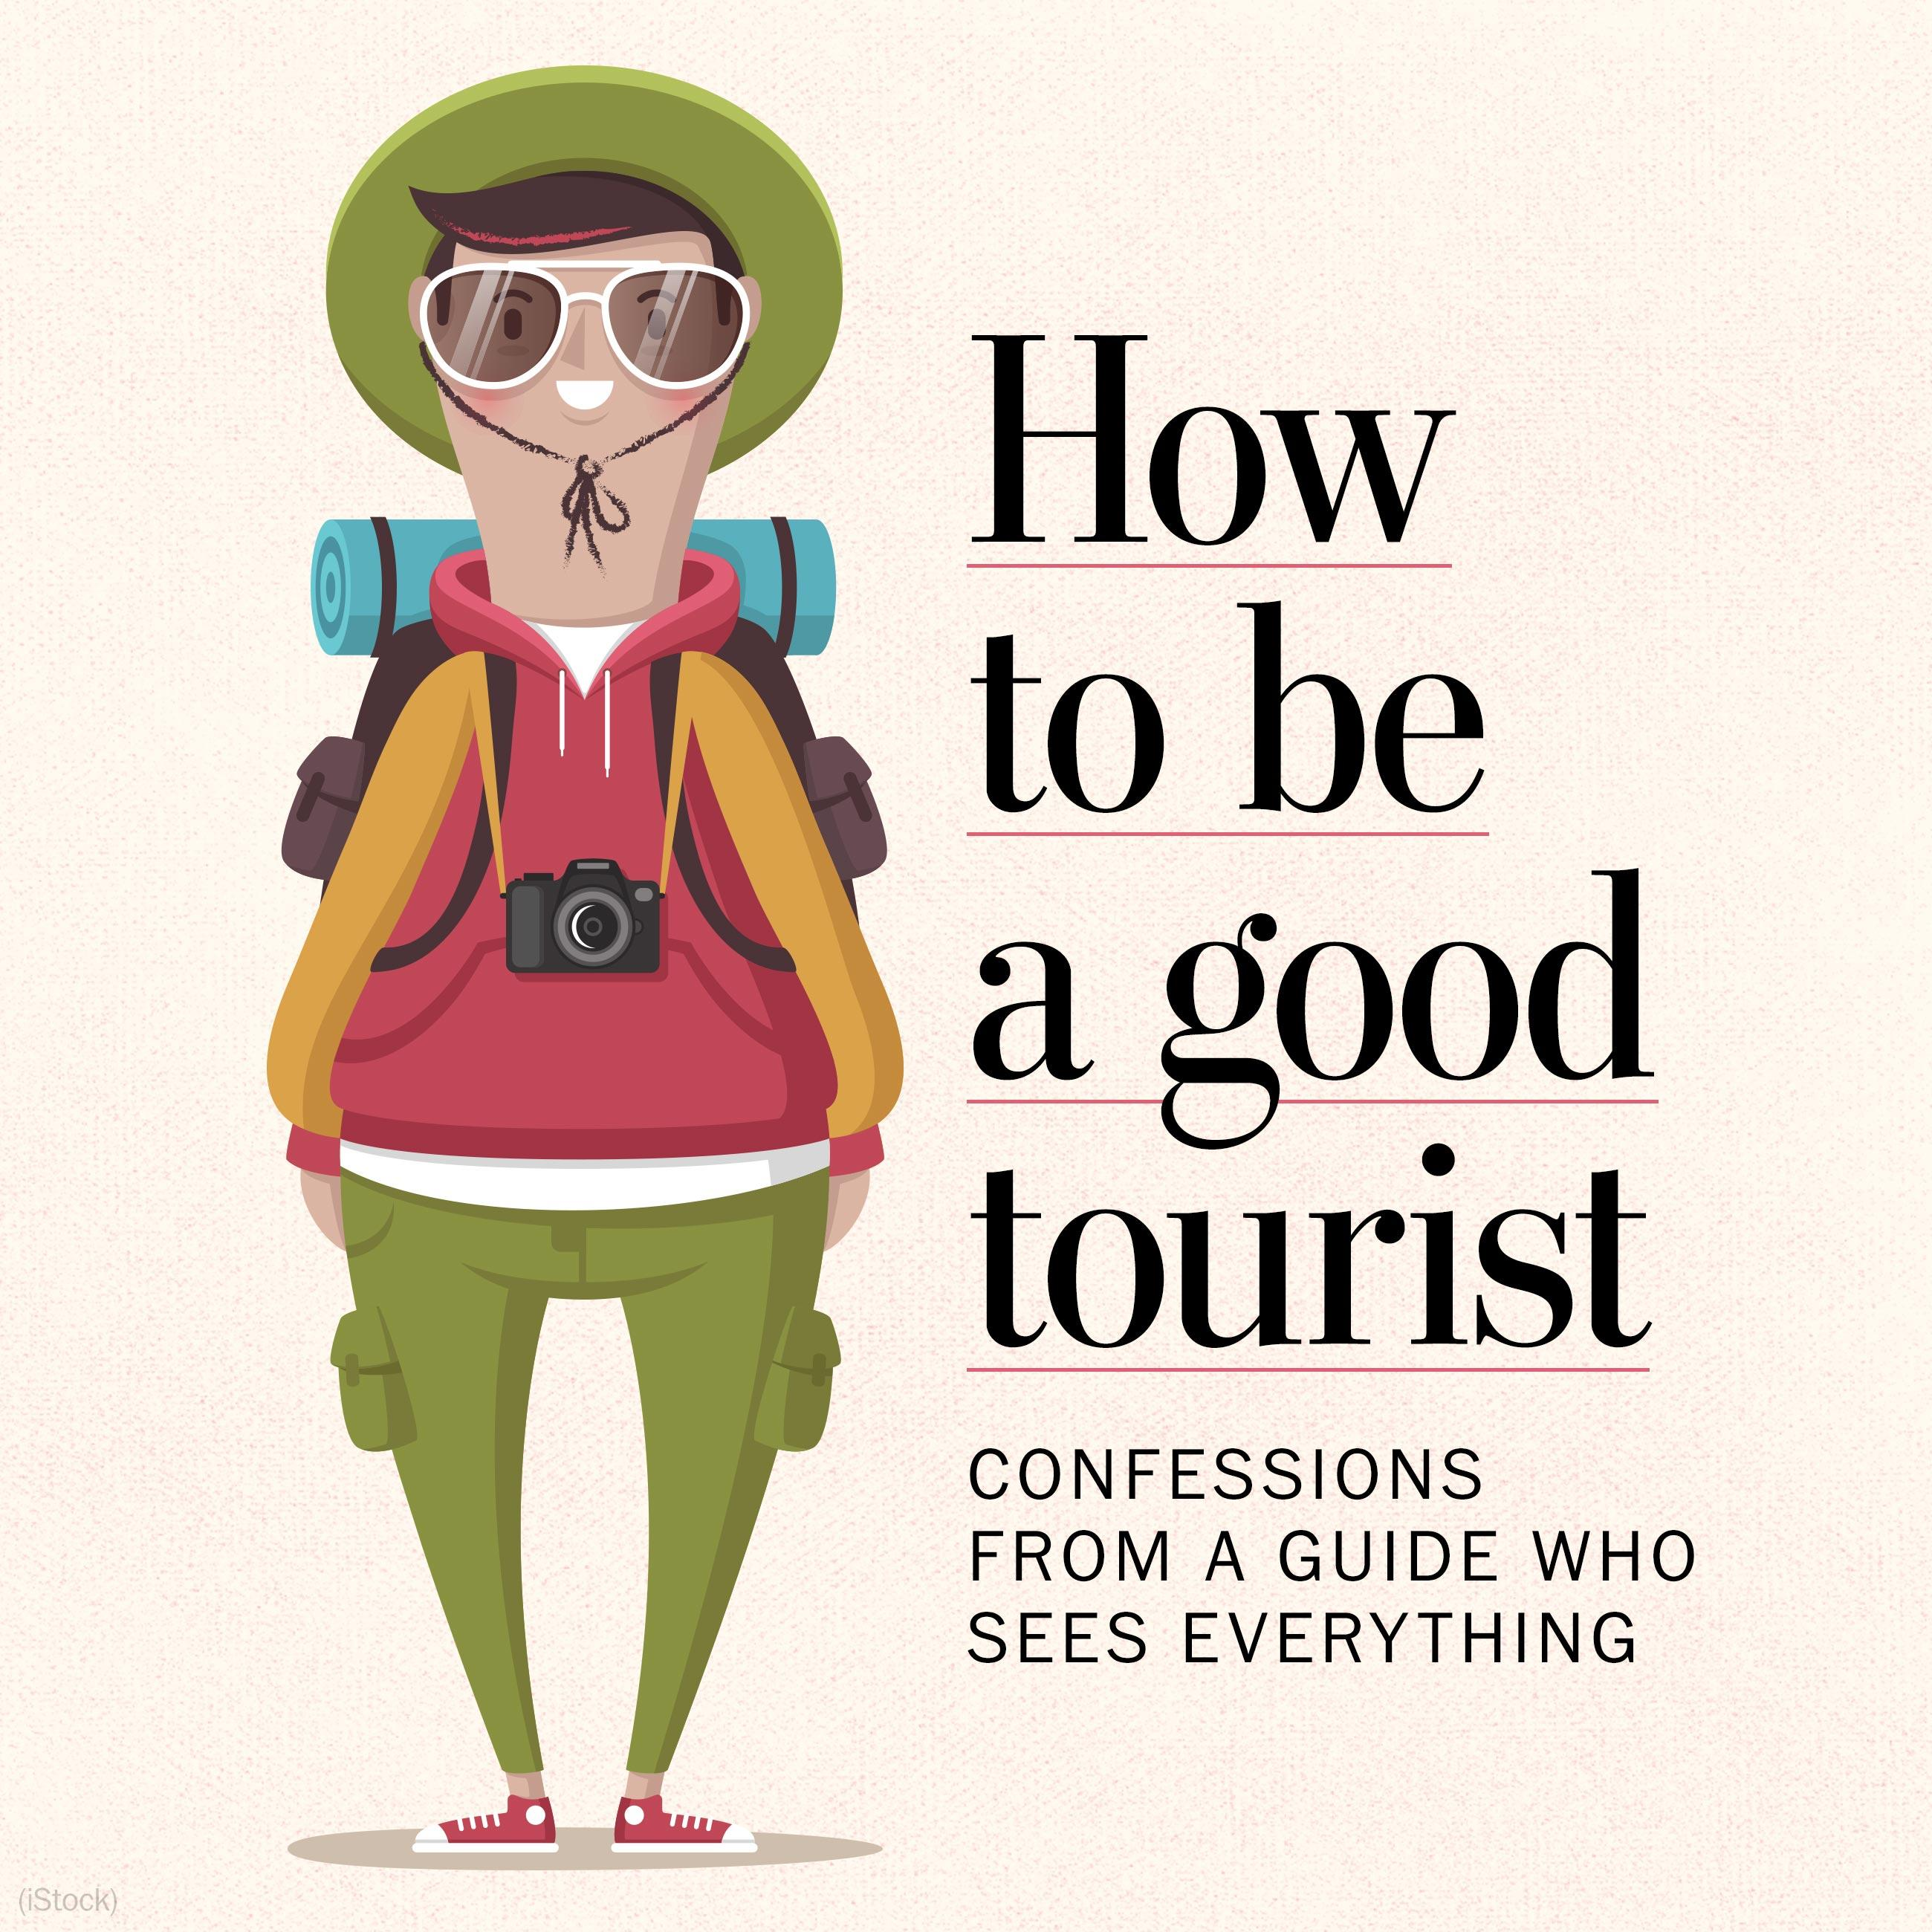 How to be the kind of tourist tour guides love